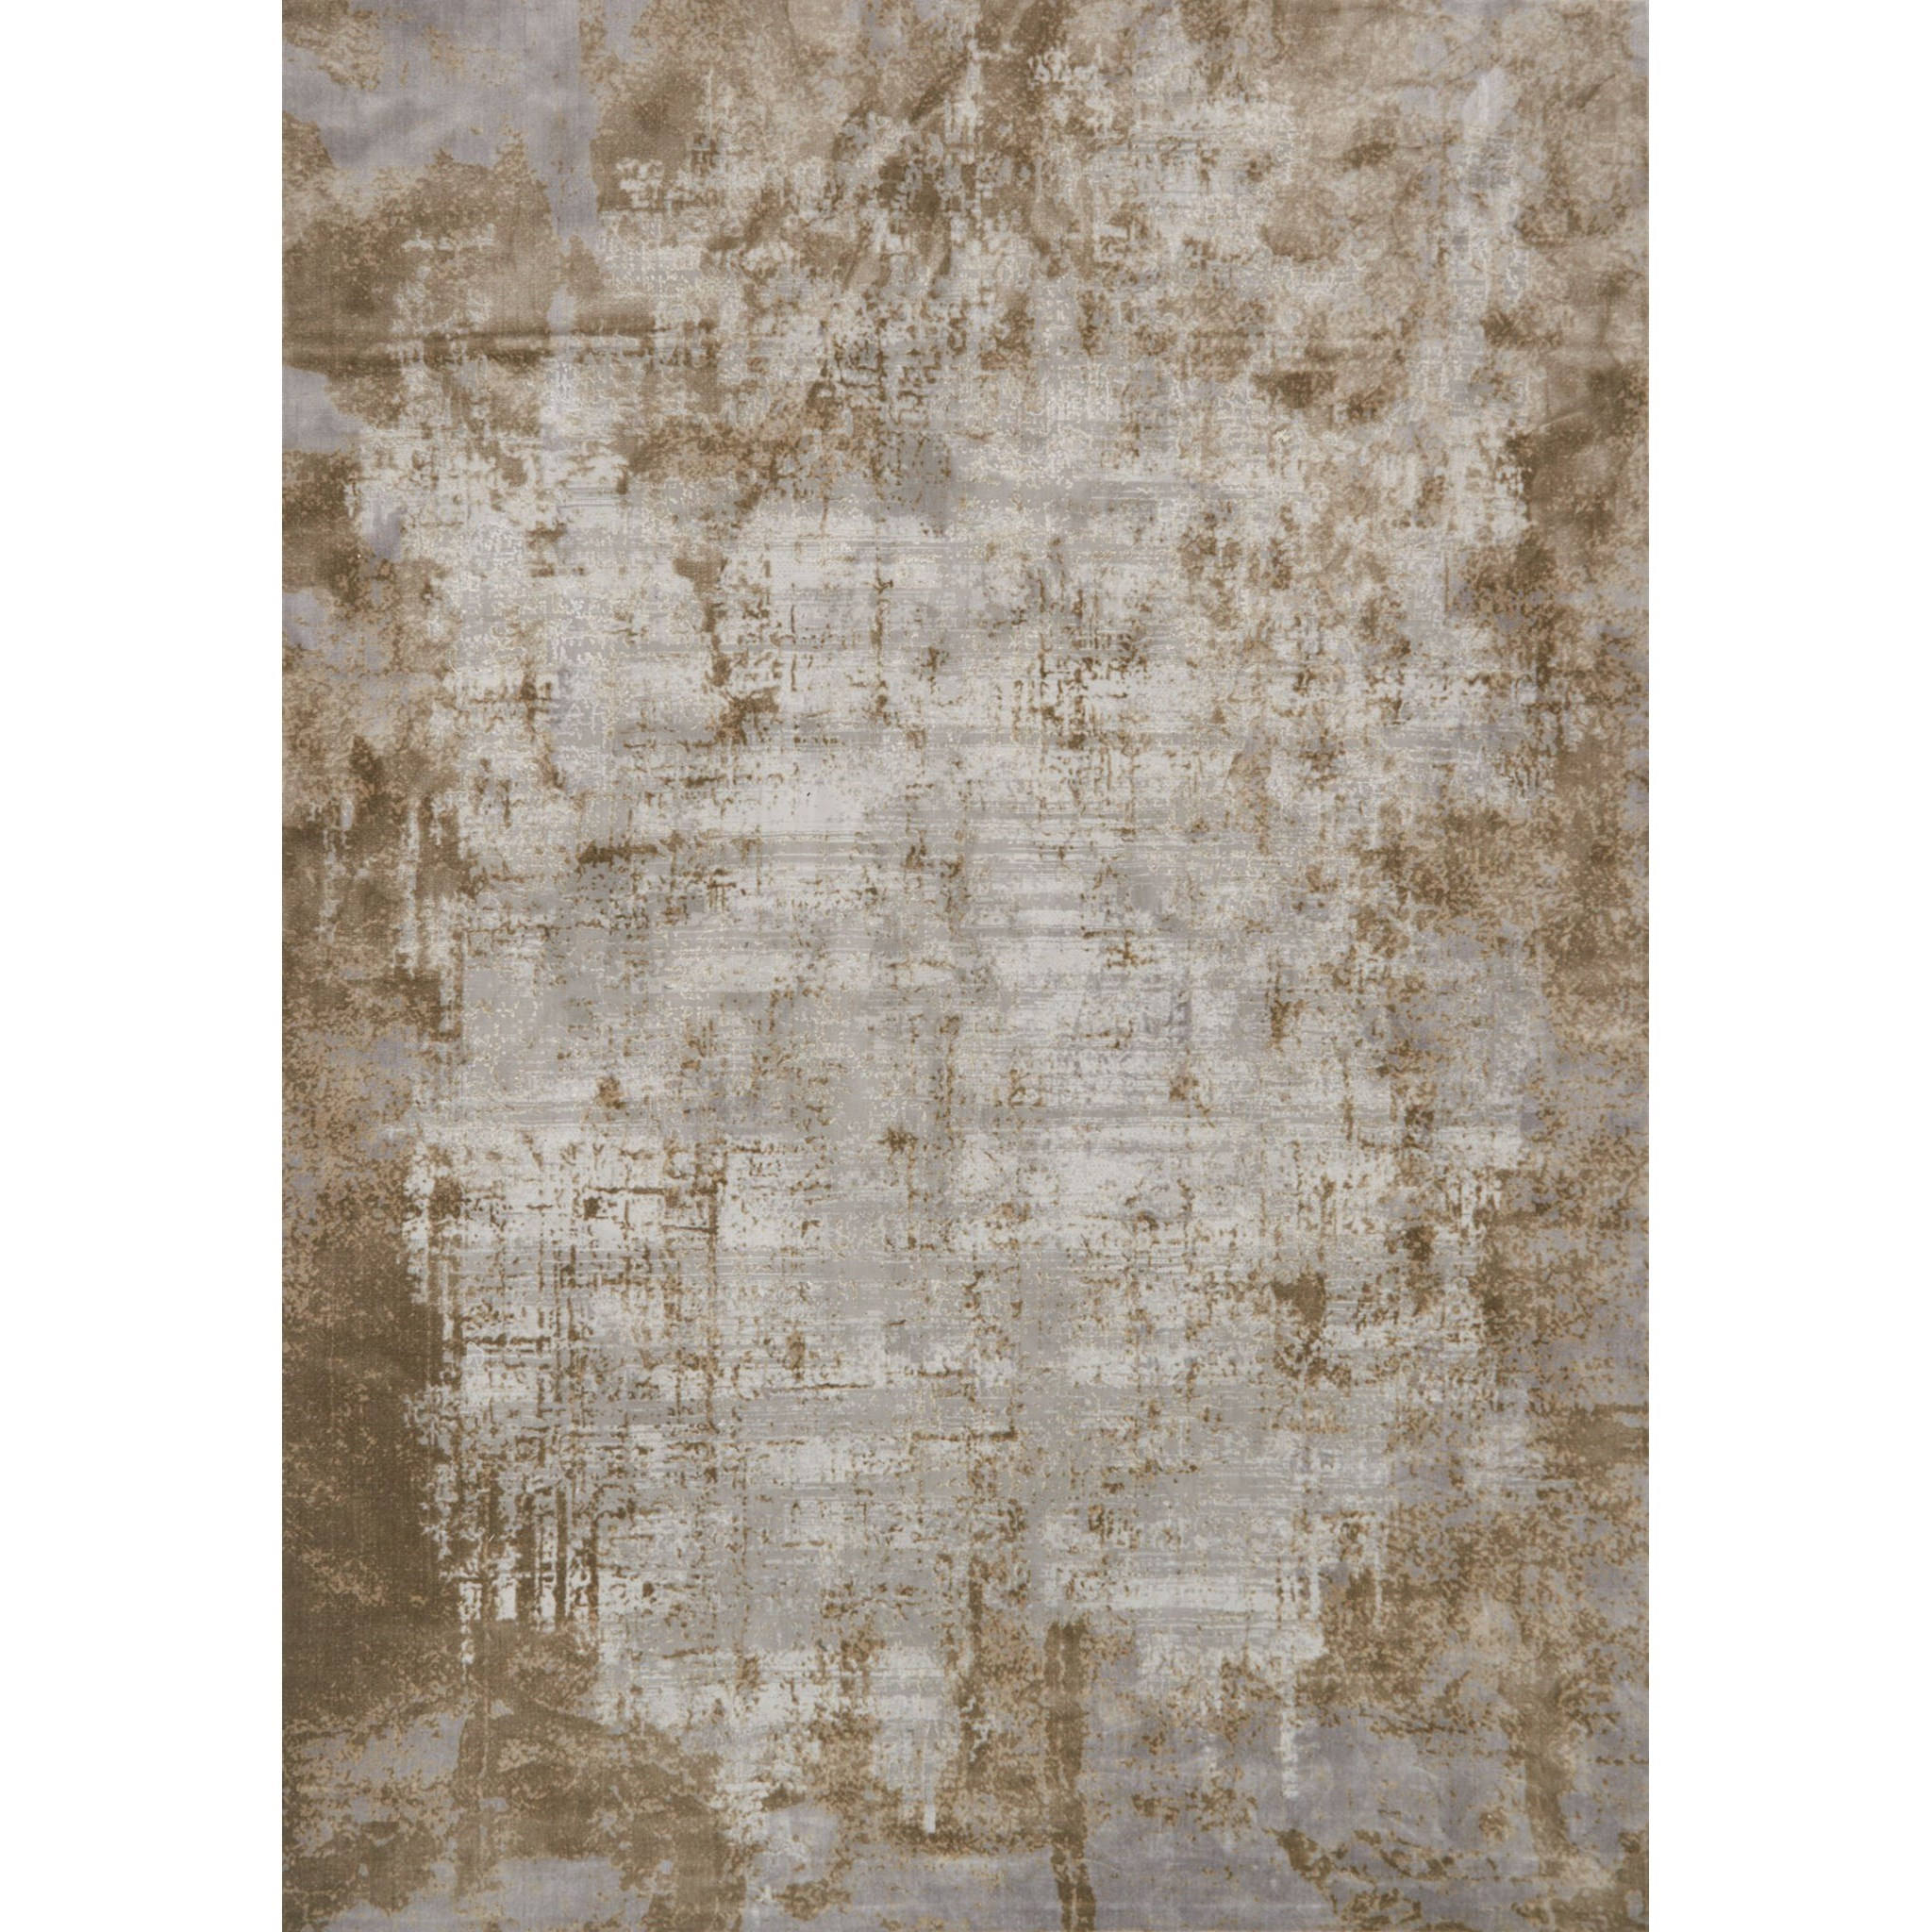 "Patina 6'-7"" X 9'-2"" Area Rug by Loloi Rugs at Belfort Furniture"